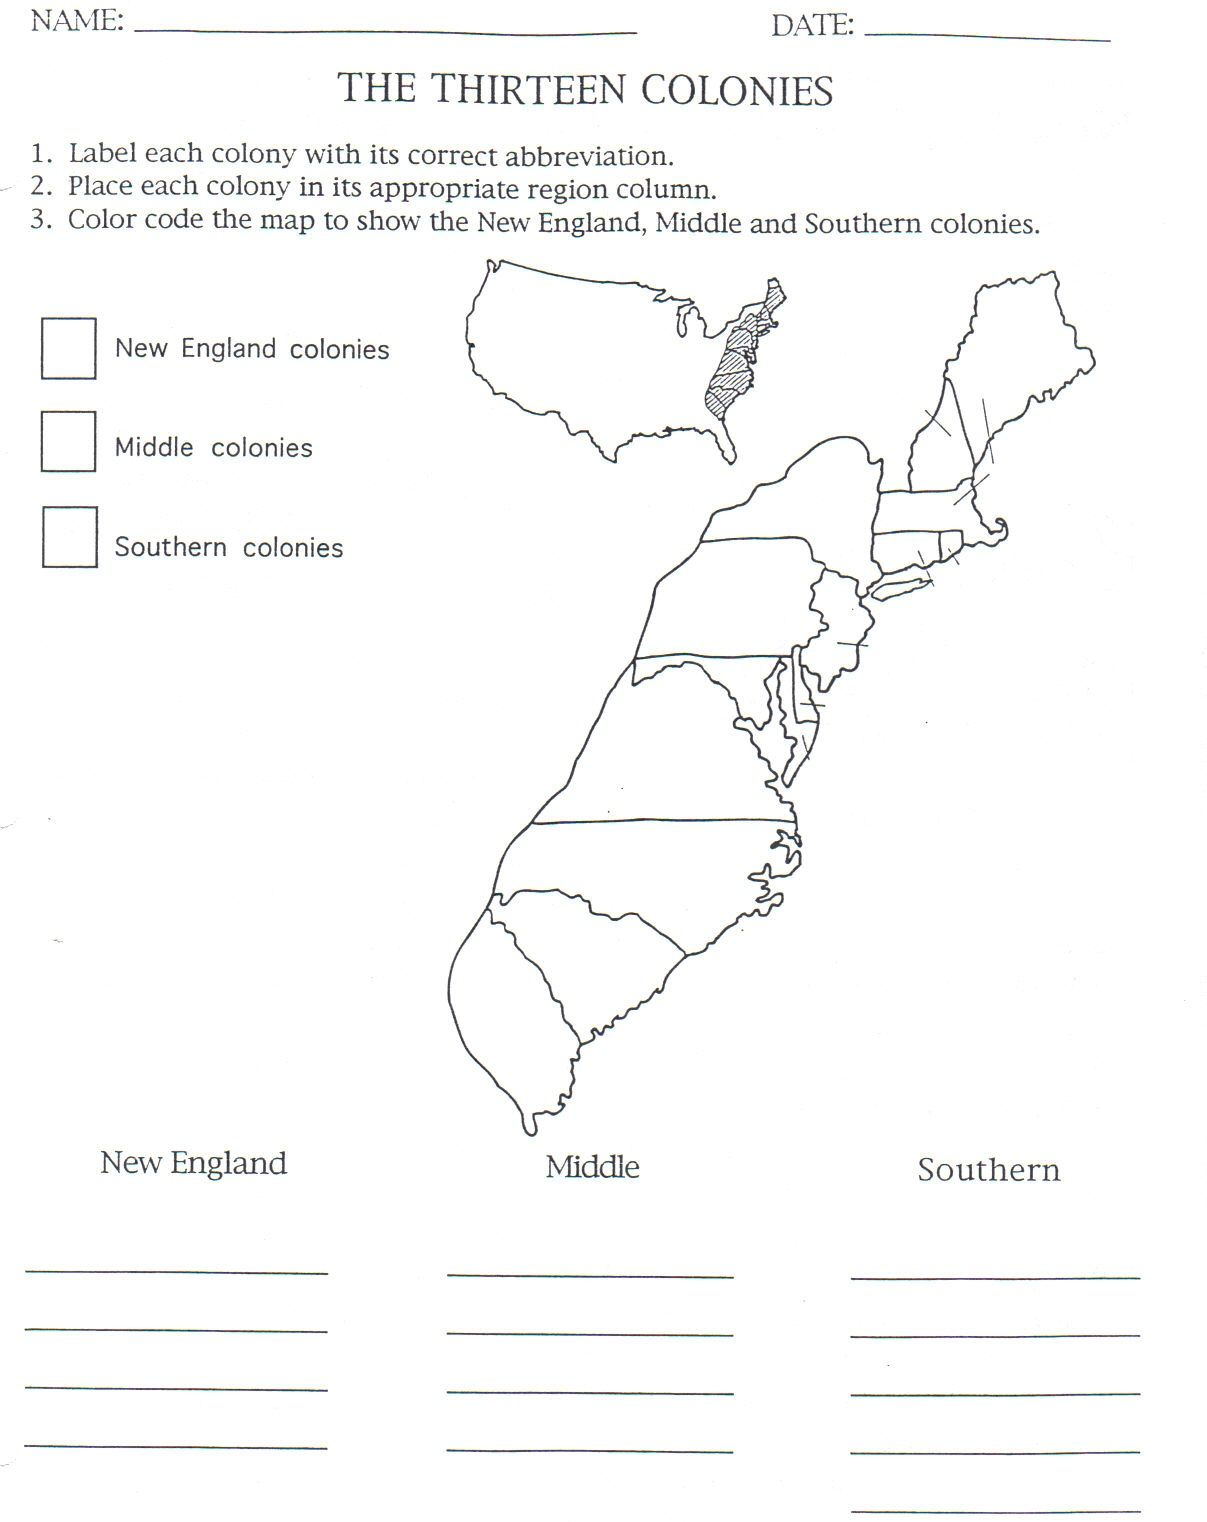 Worksheets 13 Colonies Worksheets blank 13 colonies map worksheet printout label me to color and although notice that they have maine listed as